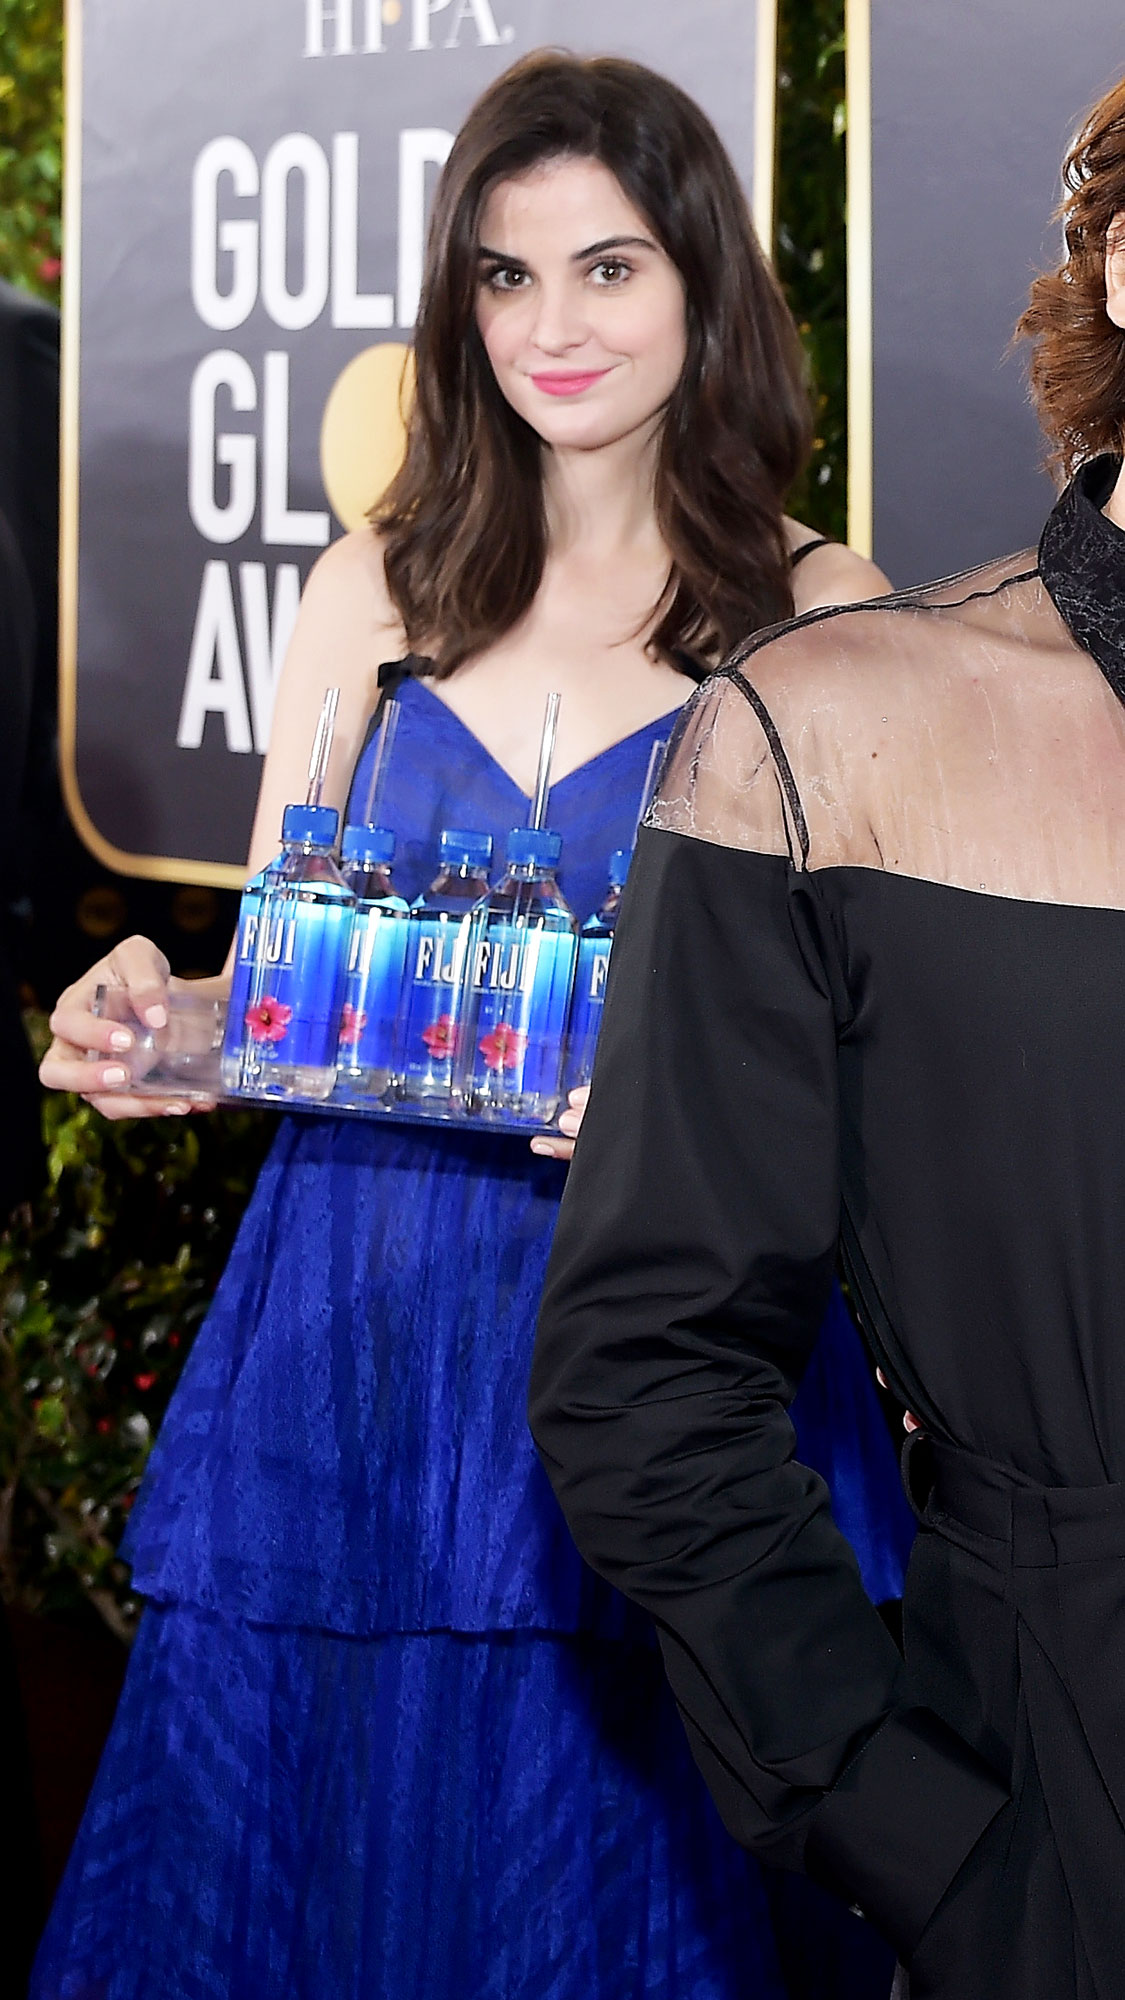 Kelleth Cuthbert fiji water girl golden globes 2019 Who Is Kelleth Cuthbert? 5 Things to Know About the Fiji Water Girl